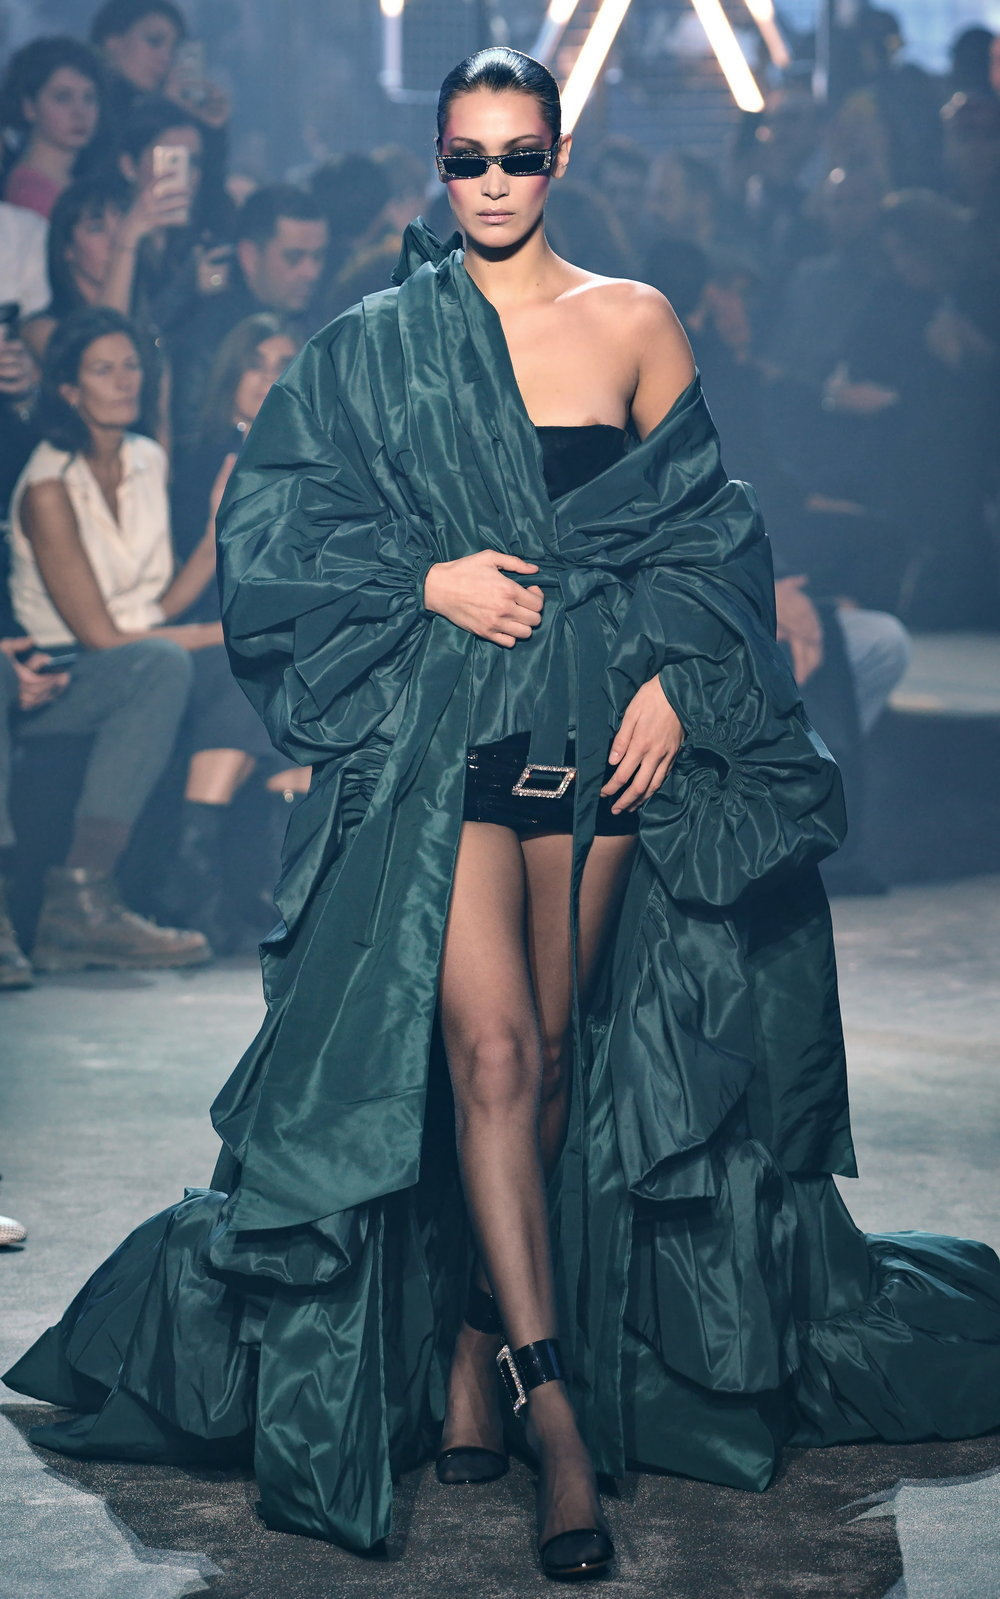 Alexandre Vauthier  Runway - Paris Fashion Week - Haute Couture 4to4u Arthur Koff bella hadid.JPG